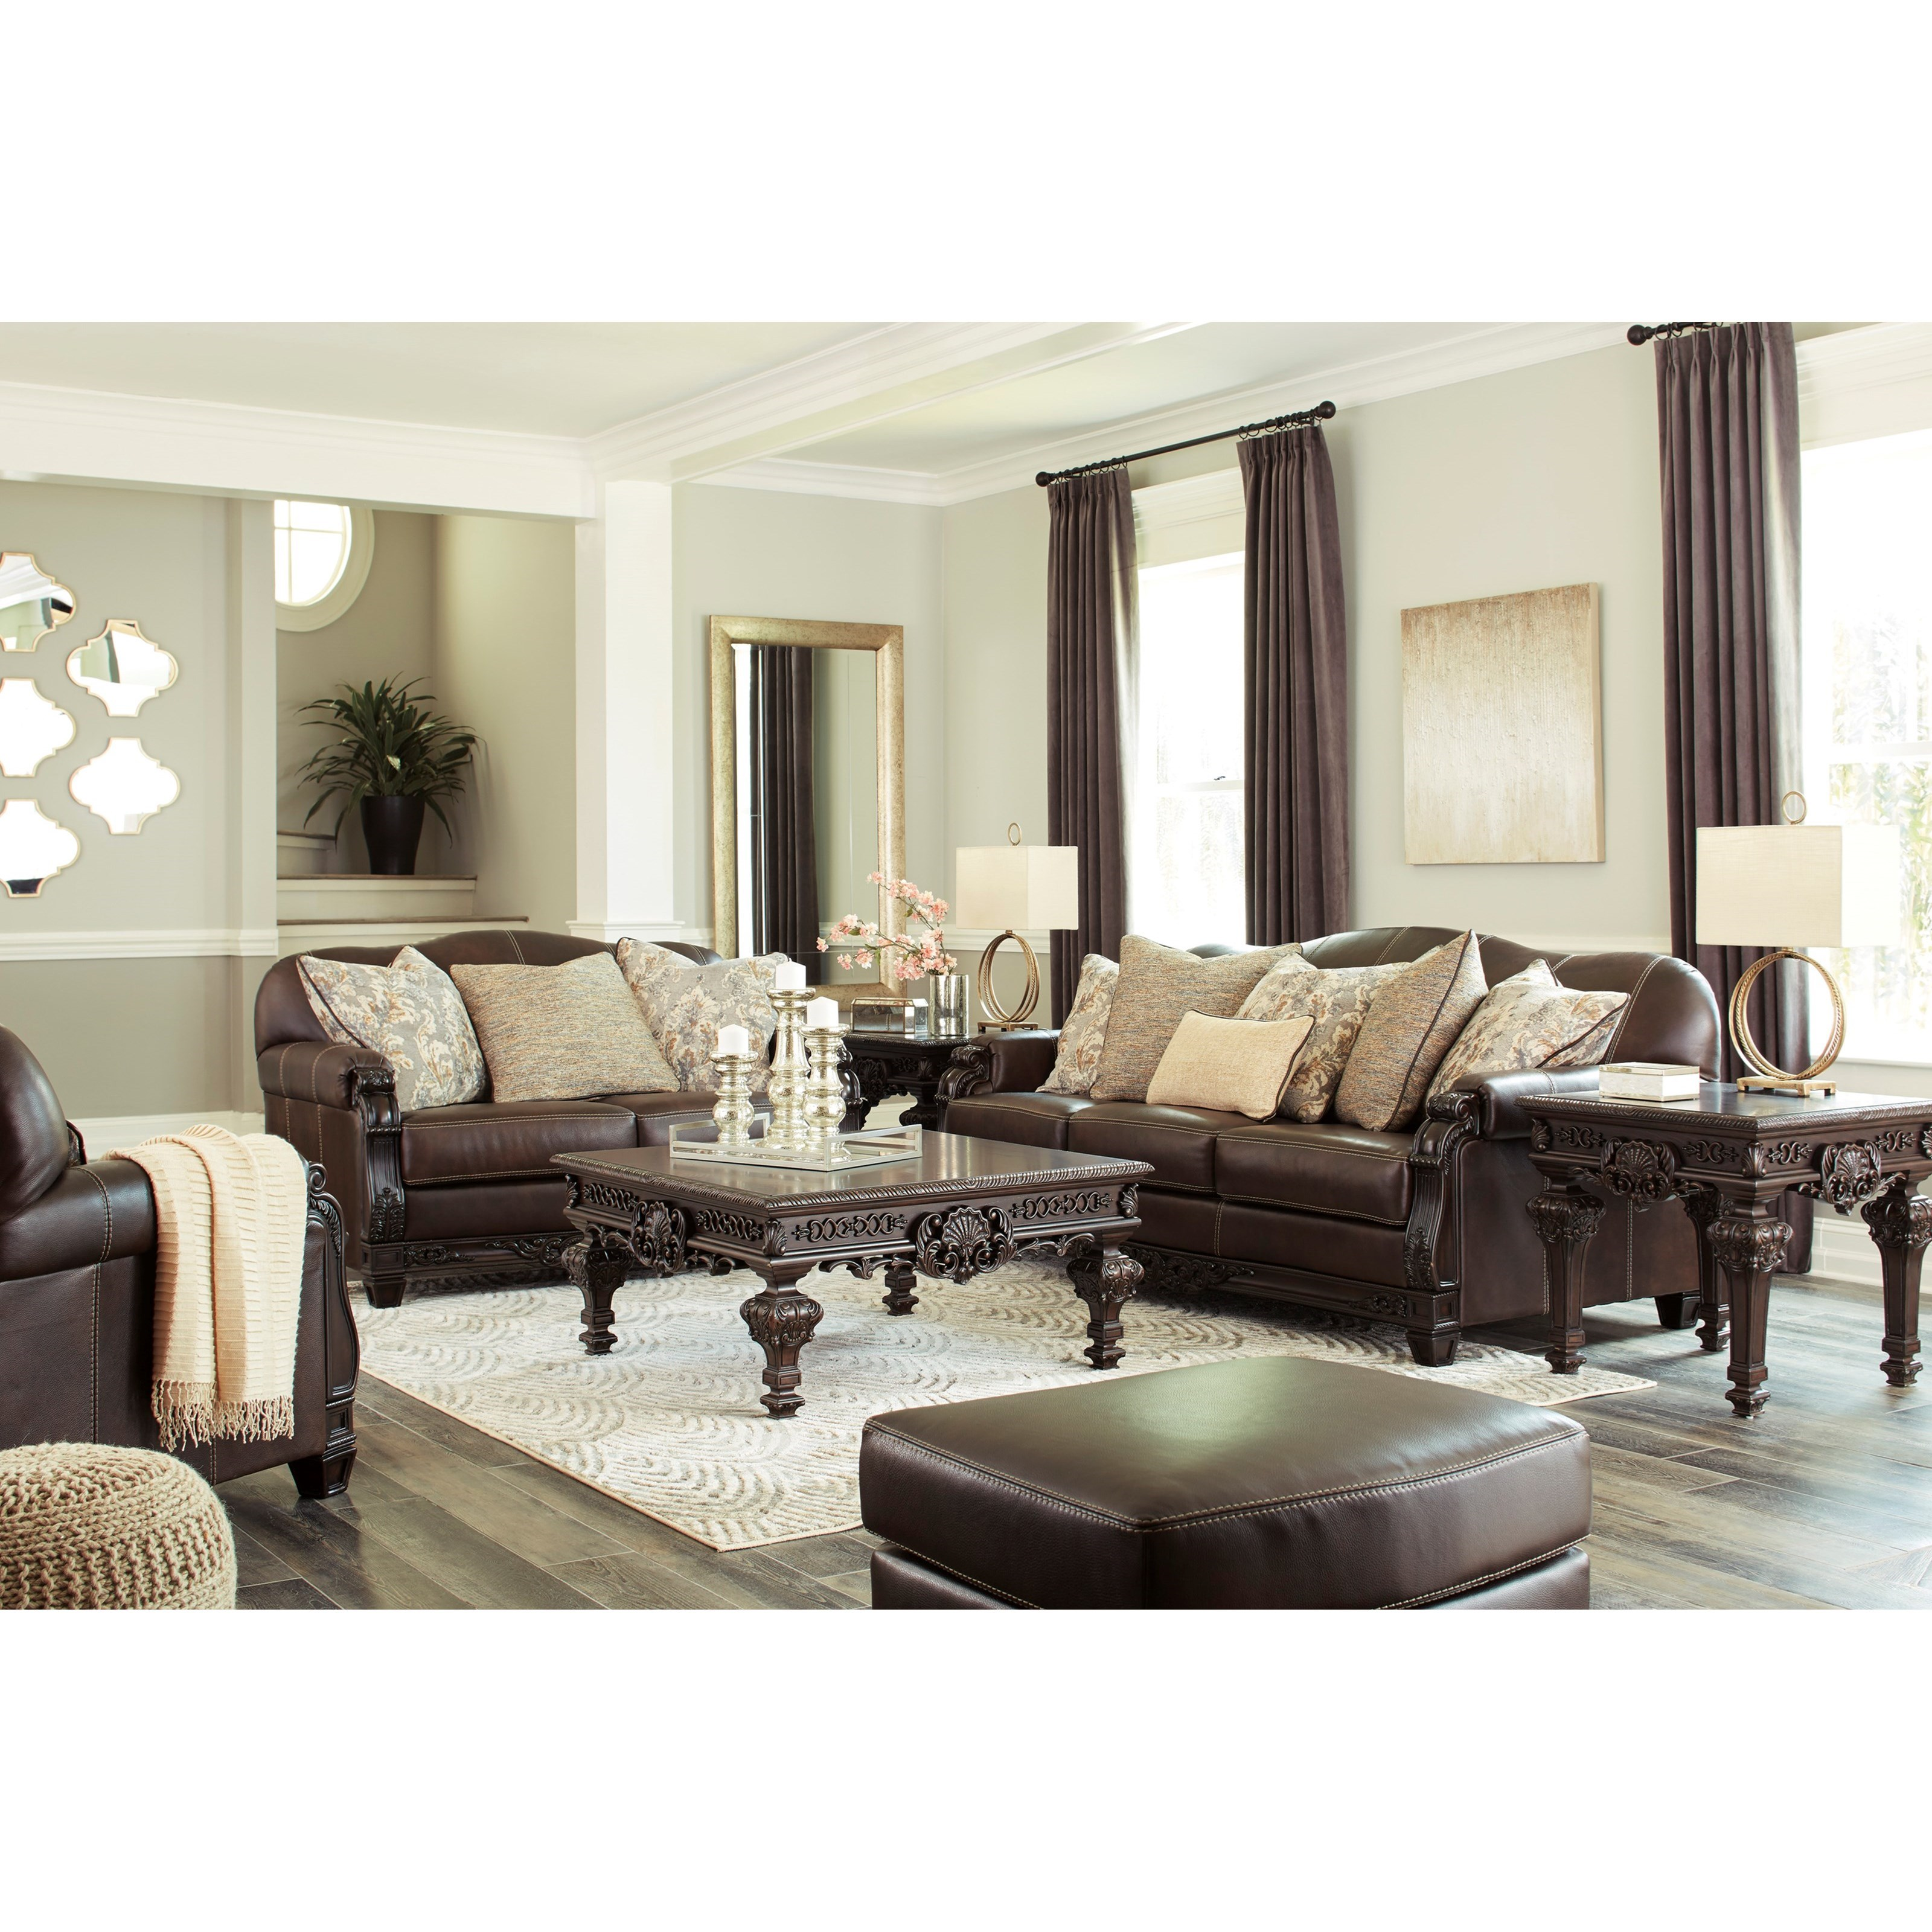 Embrook Stationary Living Room Group by Ashley (Signature Design) at Johnny Janosik